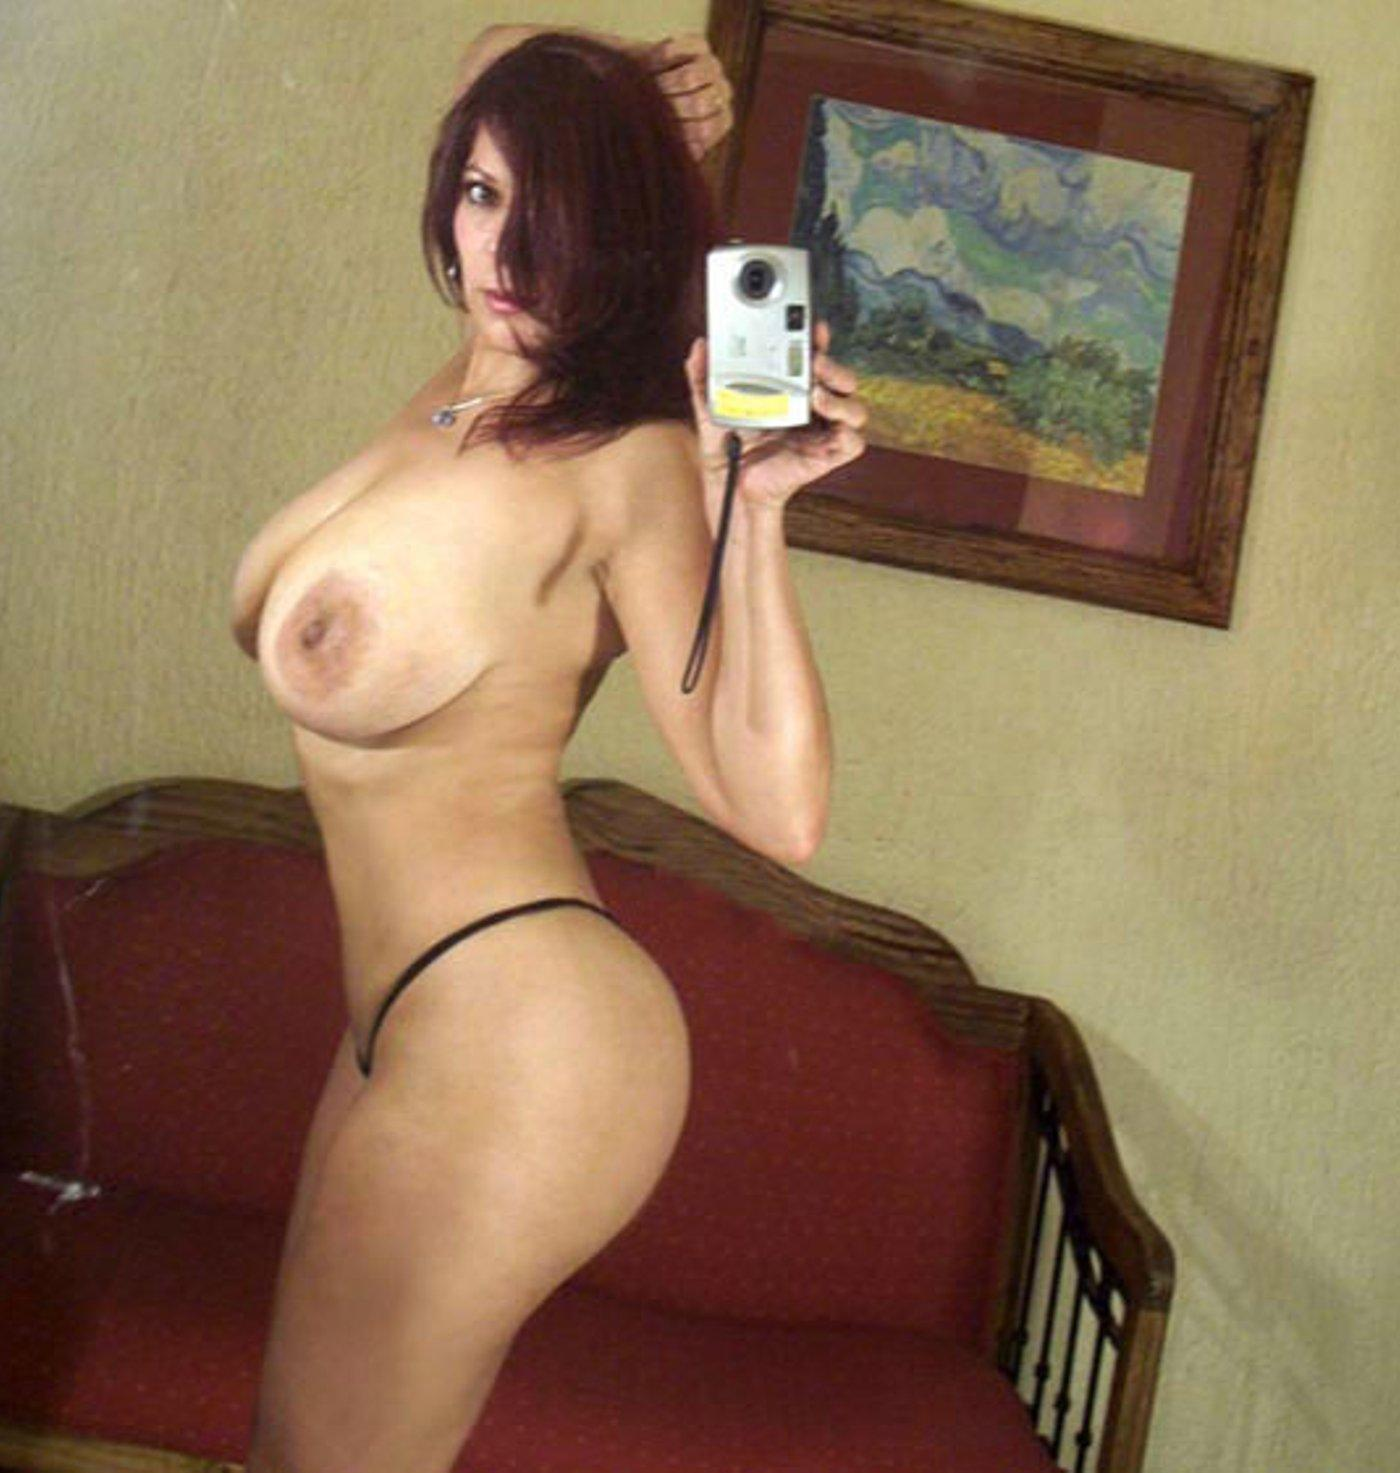 Mexican Milf shows her huge tits while taking mirror nude selfie. Sexy Maritza Mendez takes a self shot while posing without a bra